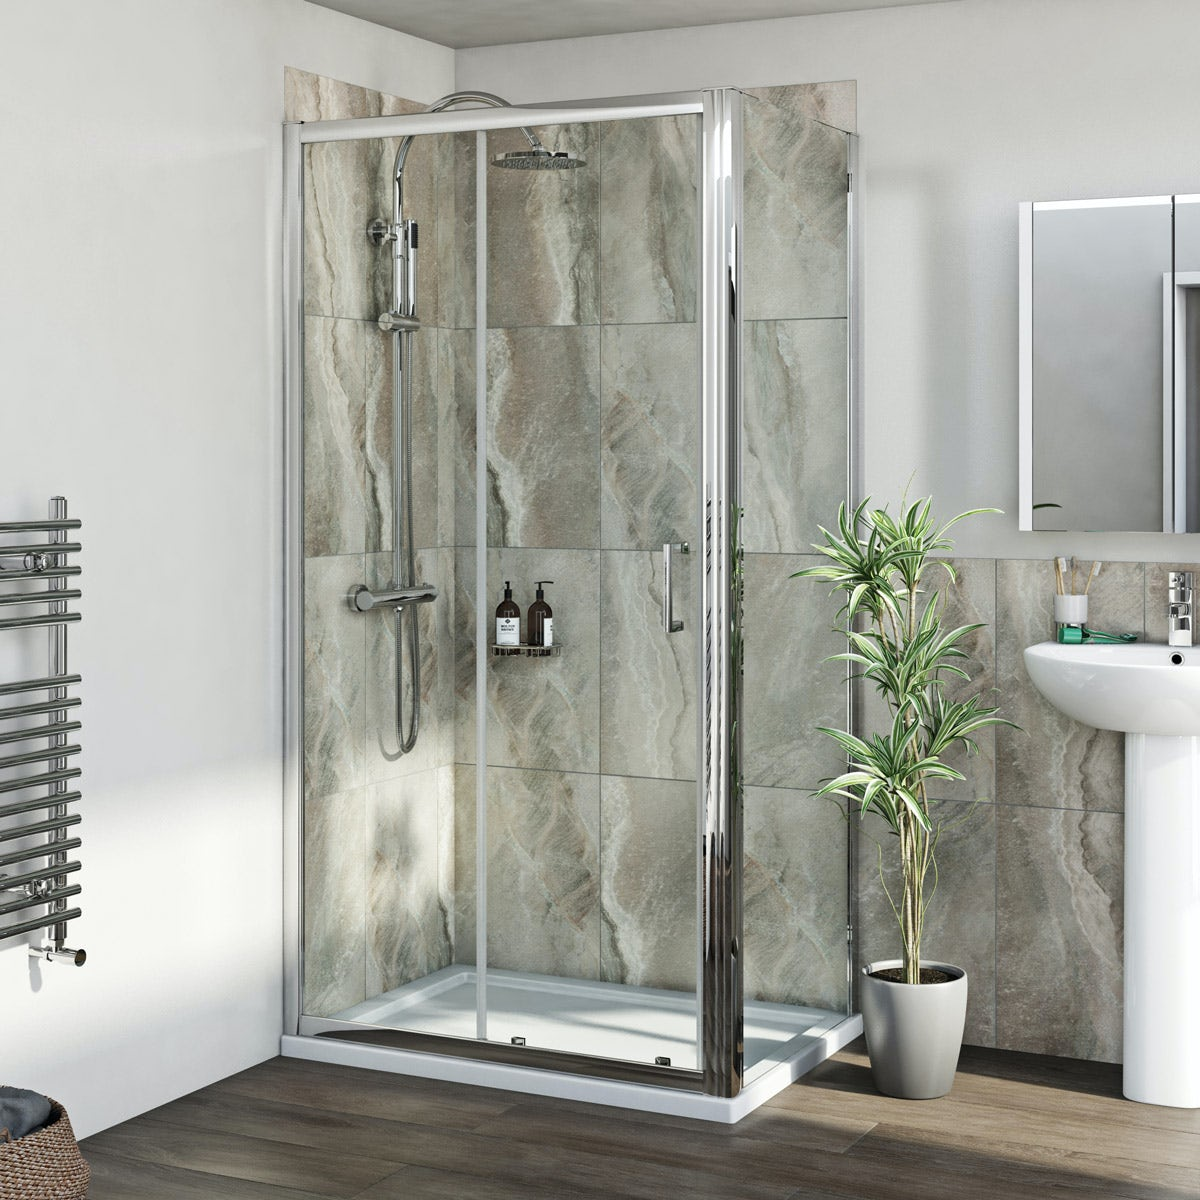 Mira shower system and 6mm sliding door with stone shower tray and waste 1000 x 700